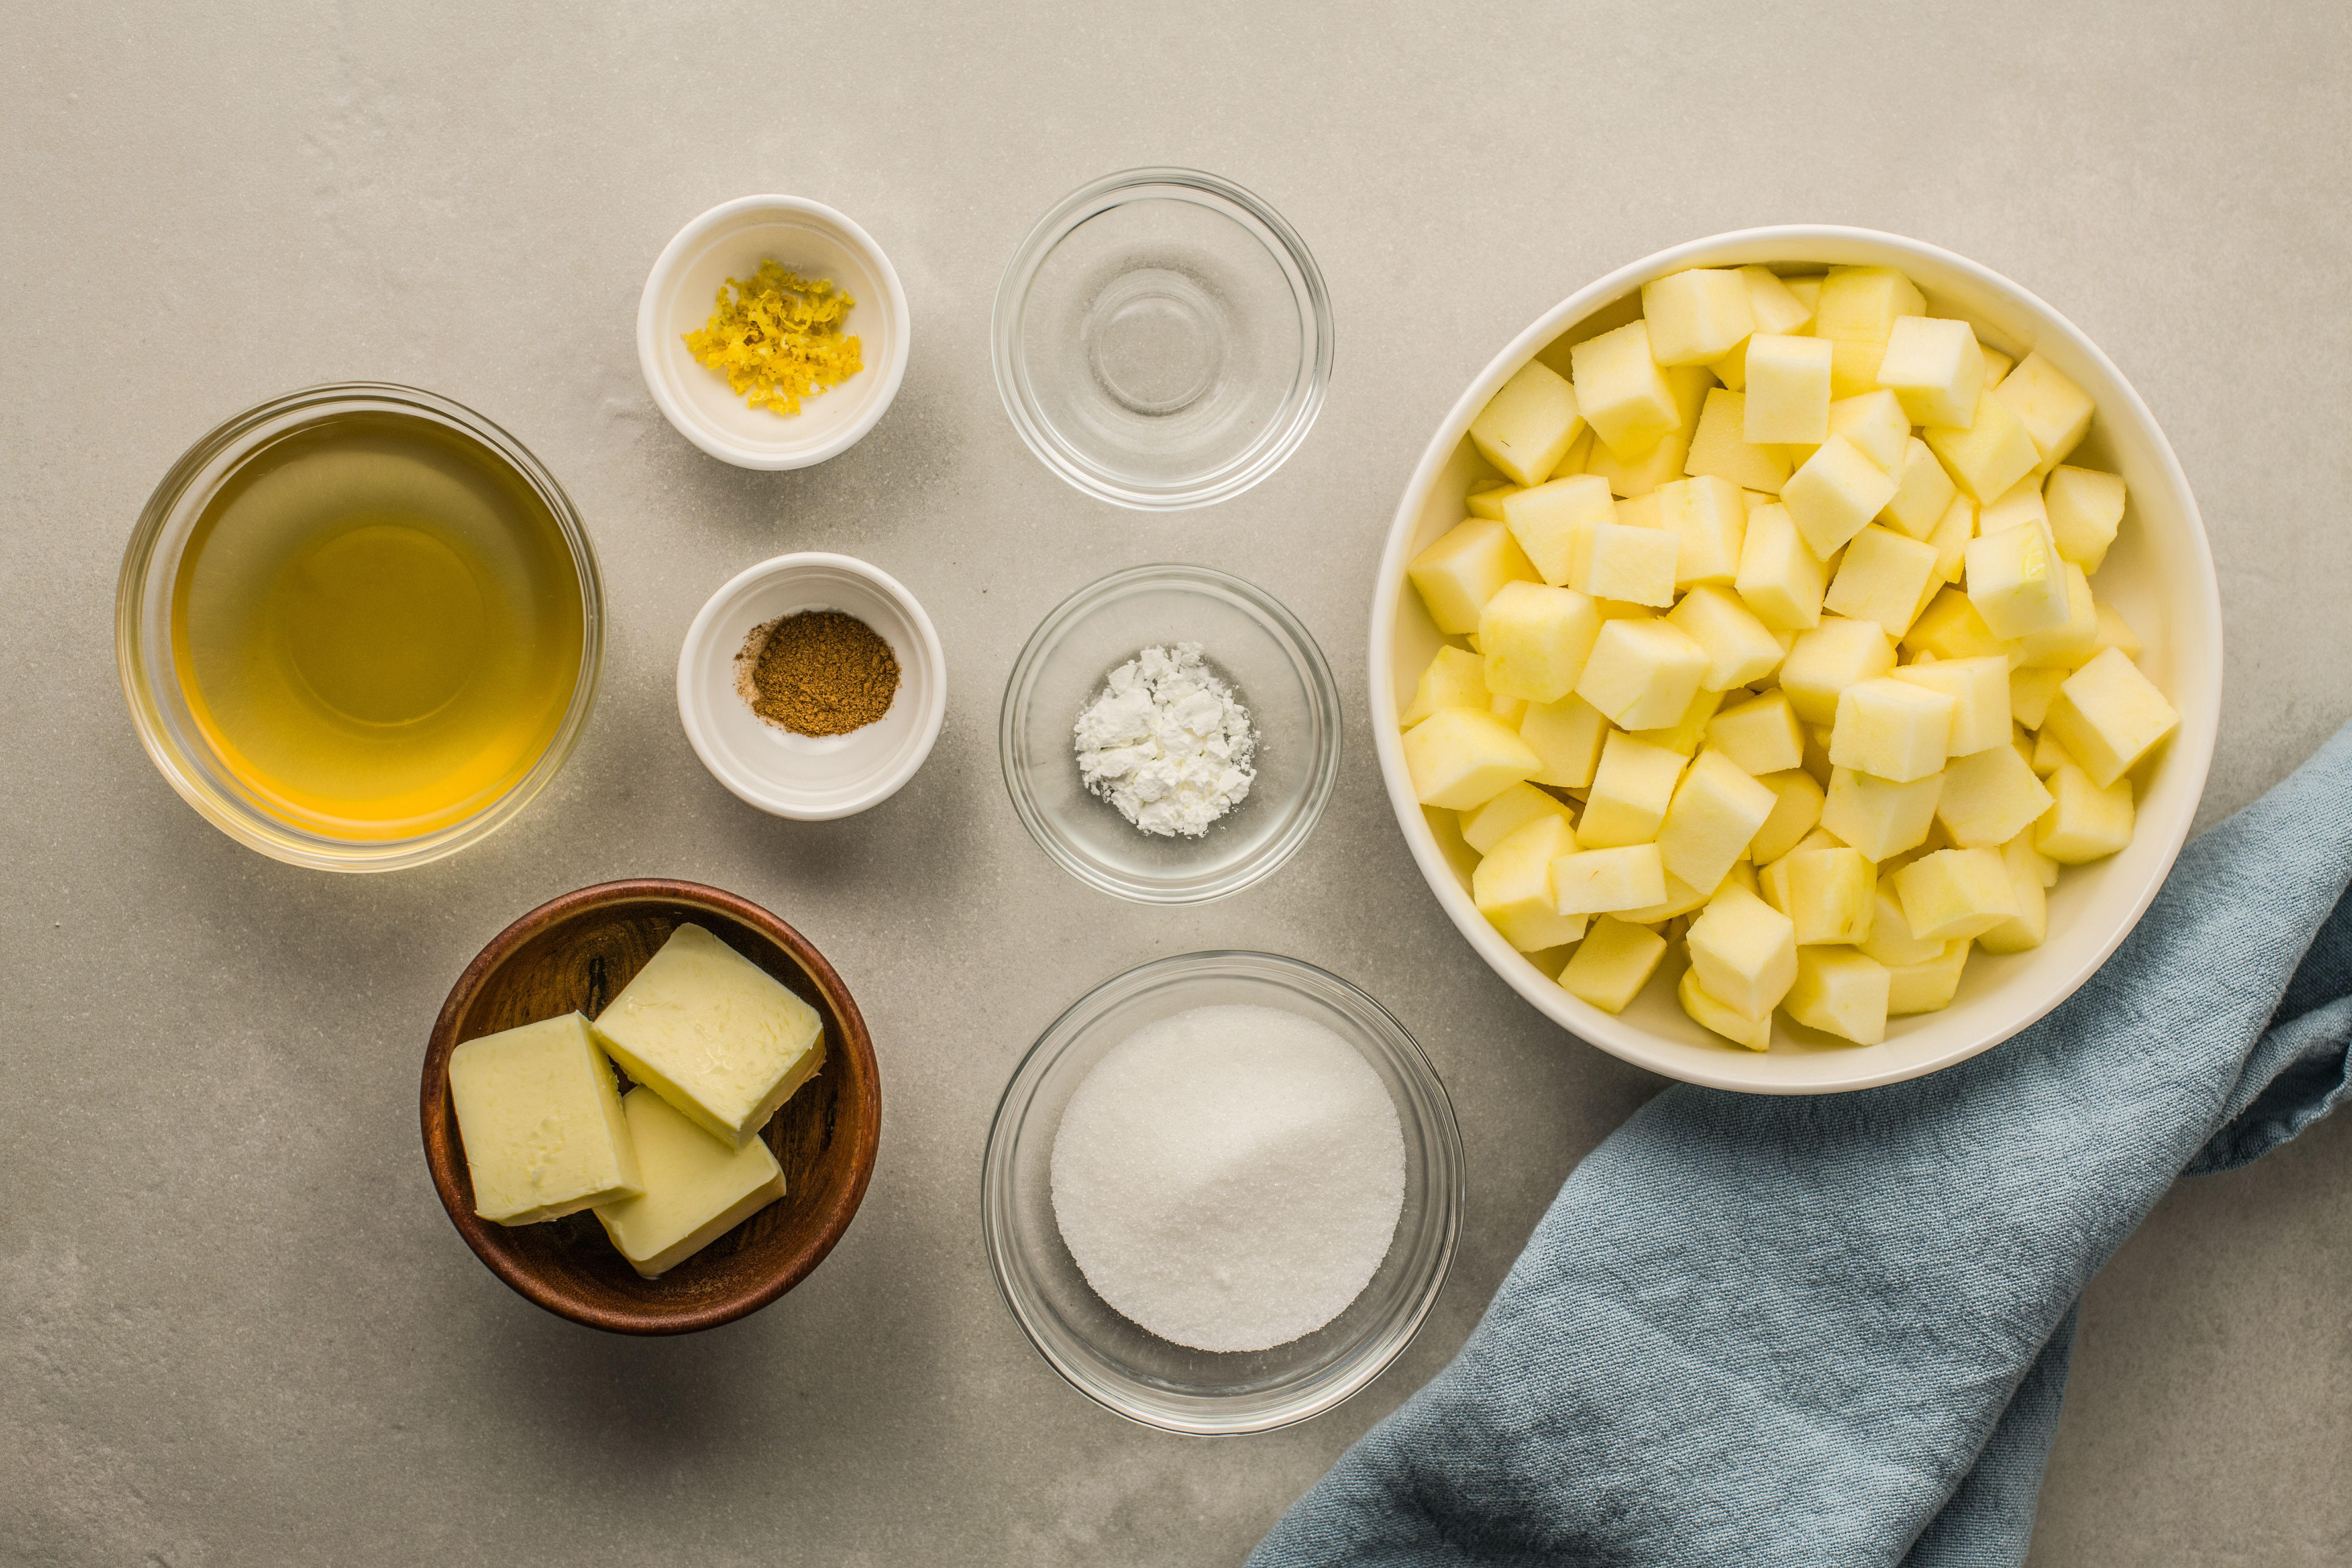 Ingredients for caramelized apples